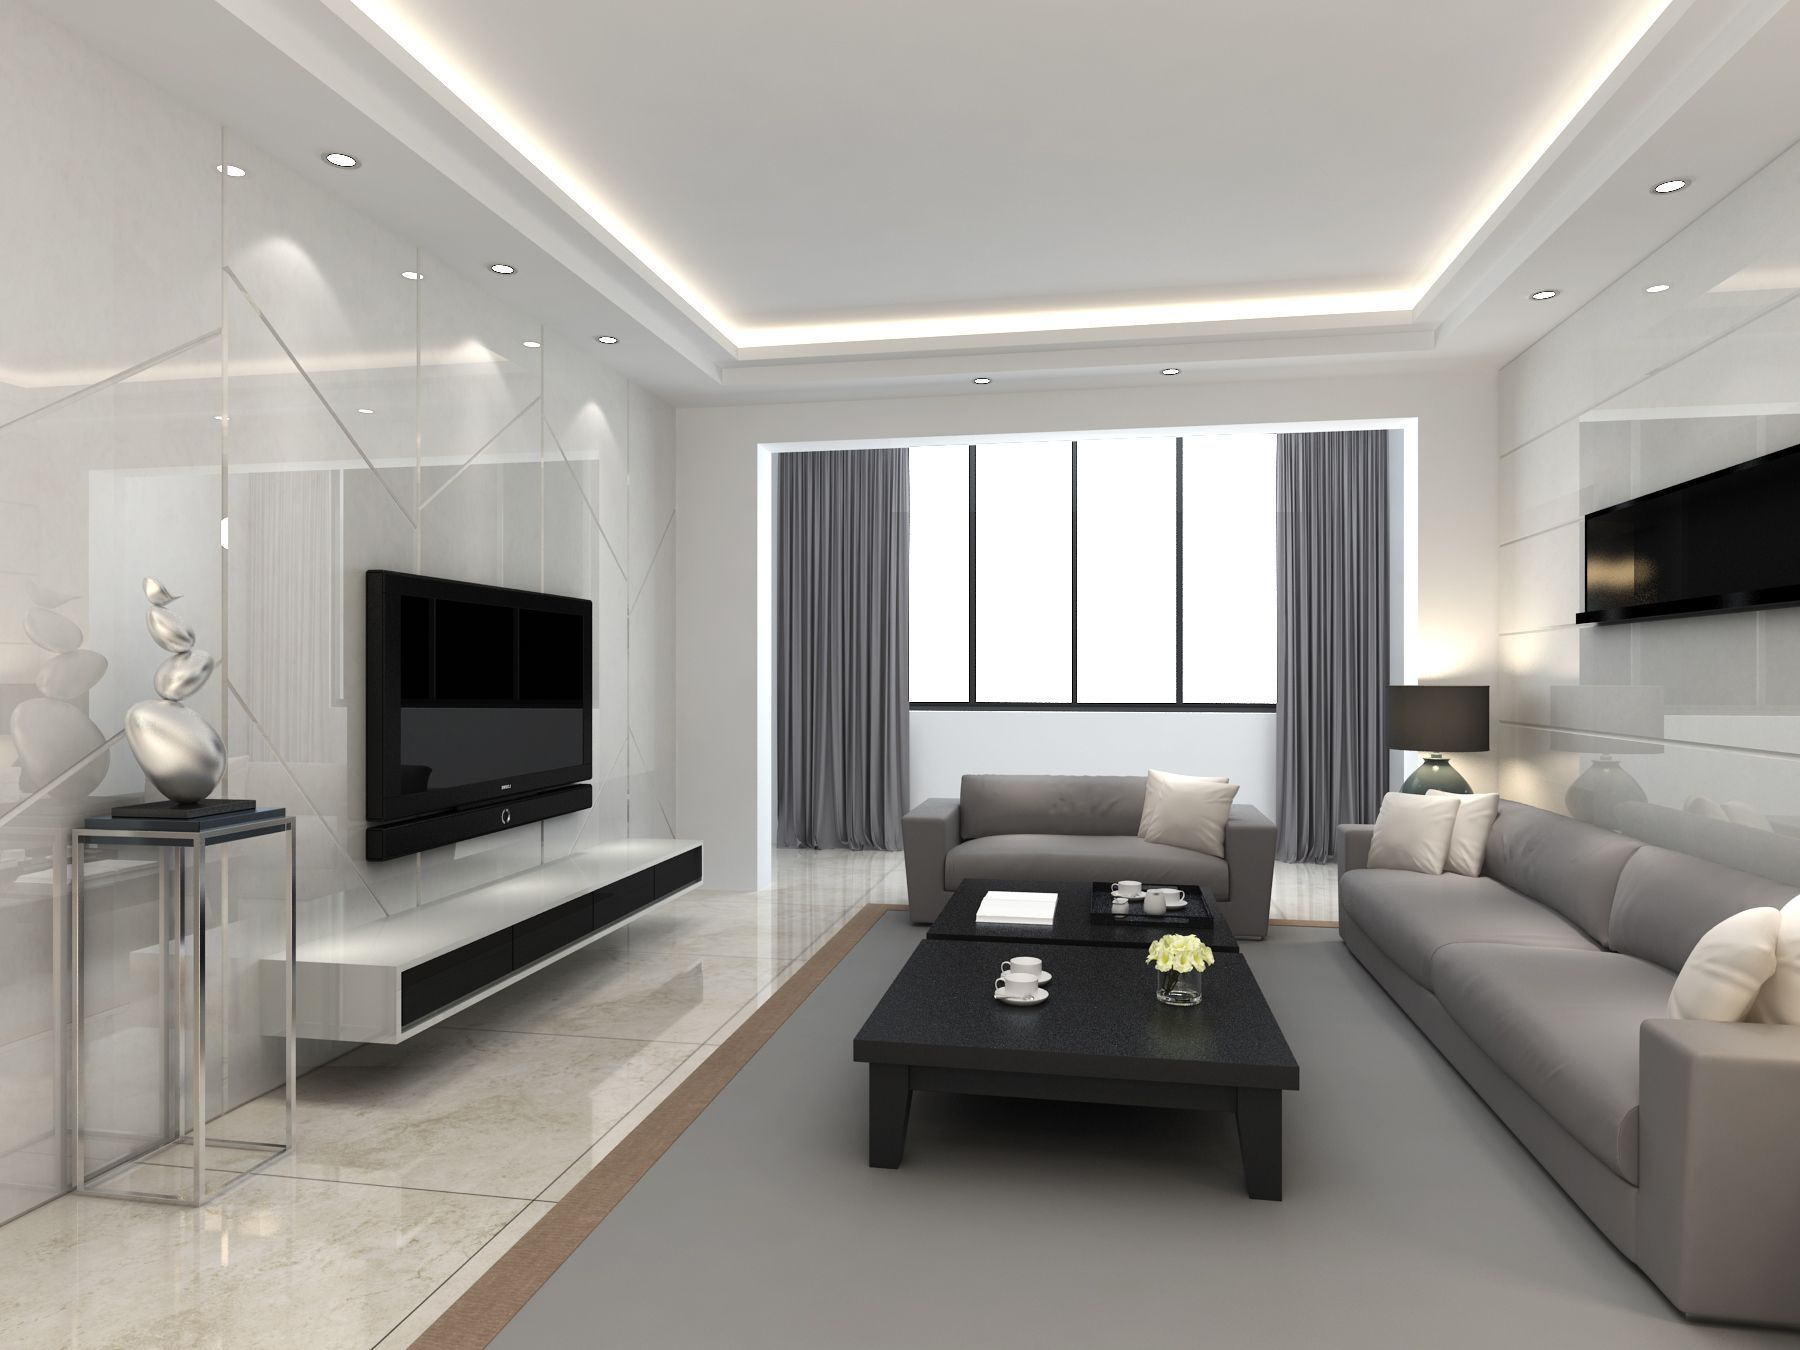 9 Awesome Minimalist Interior Design  Ceiling design living room